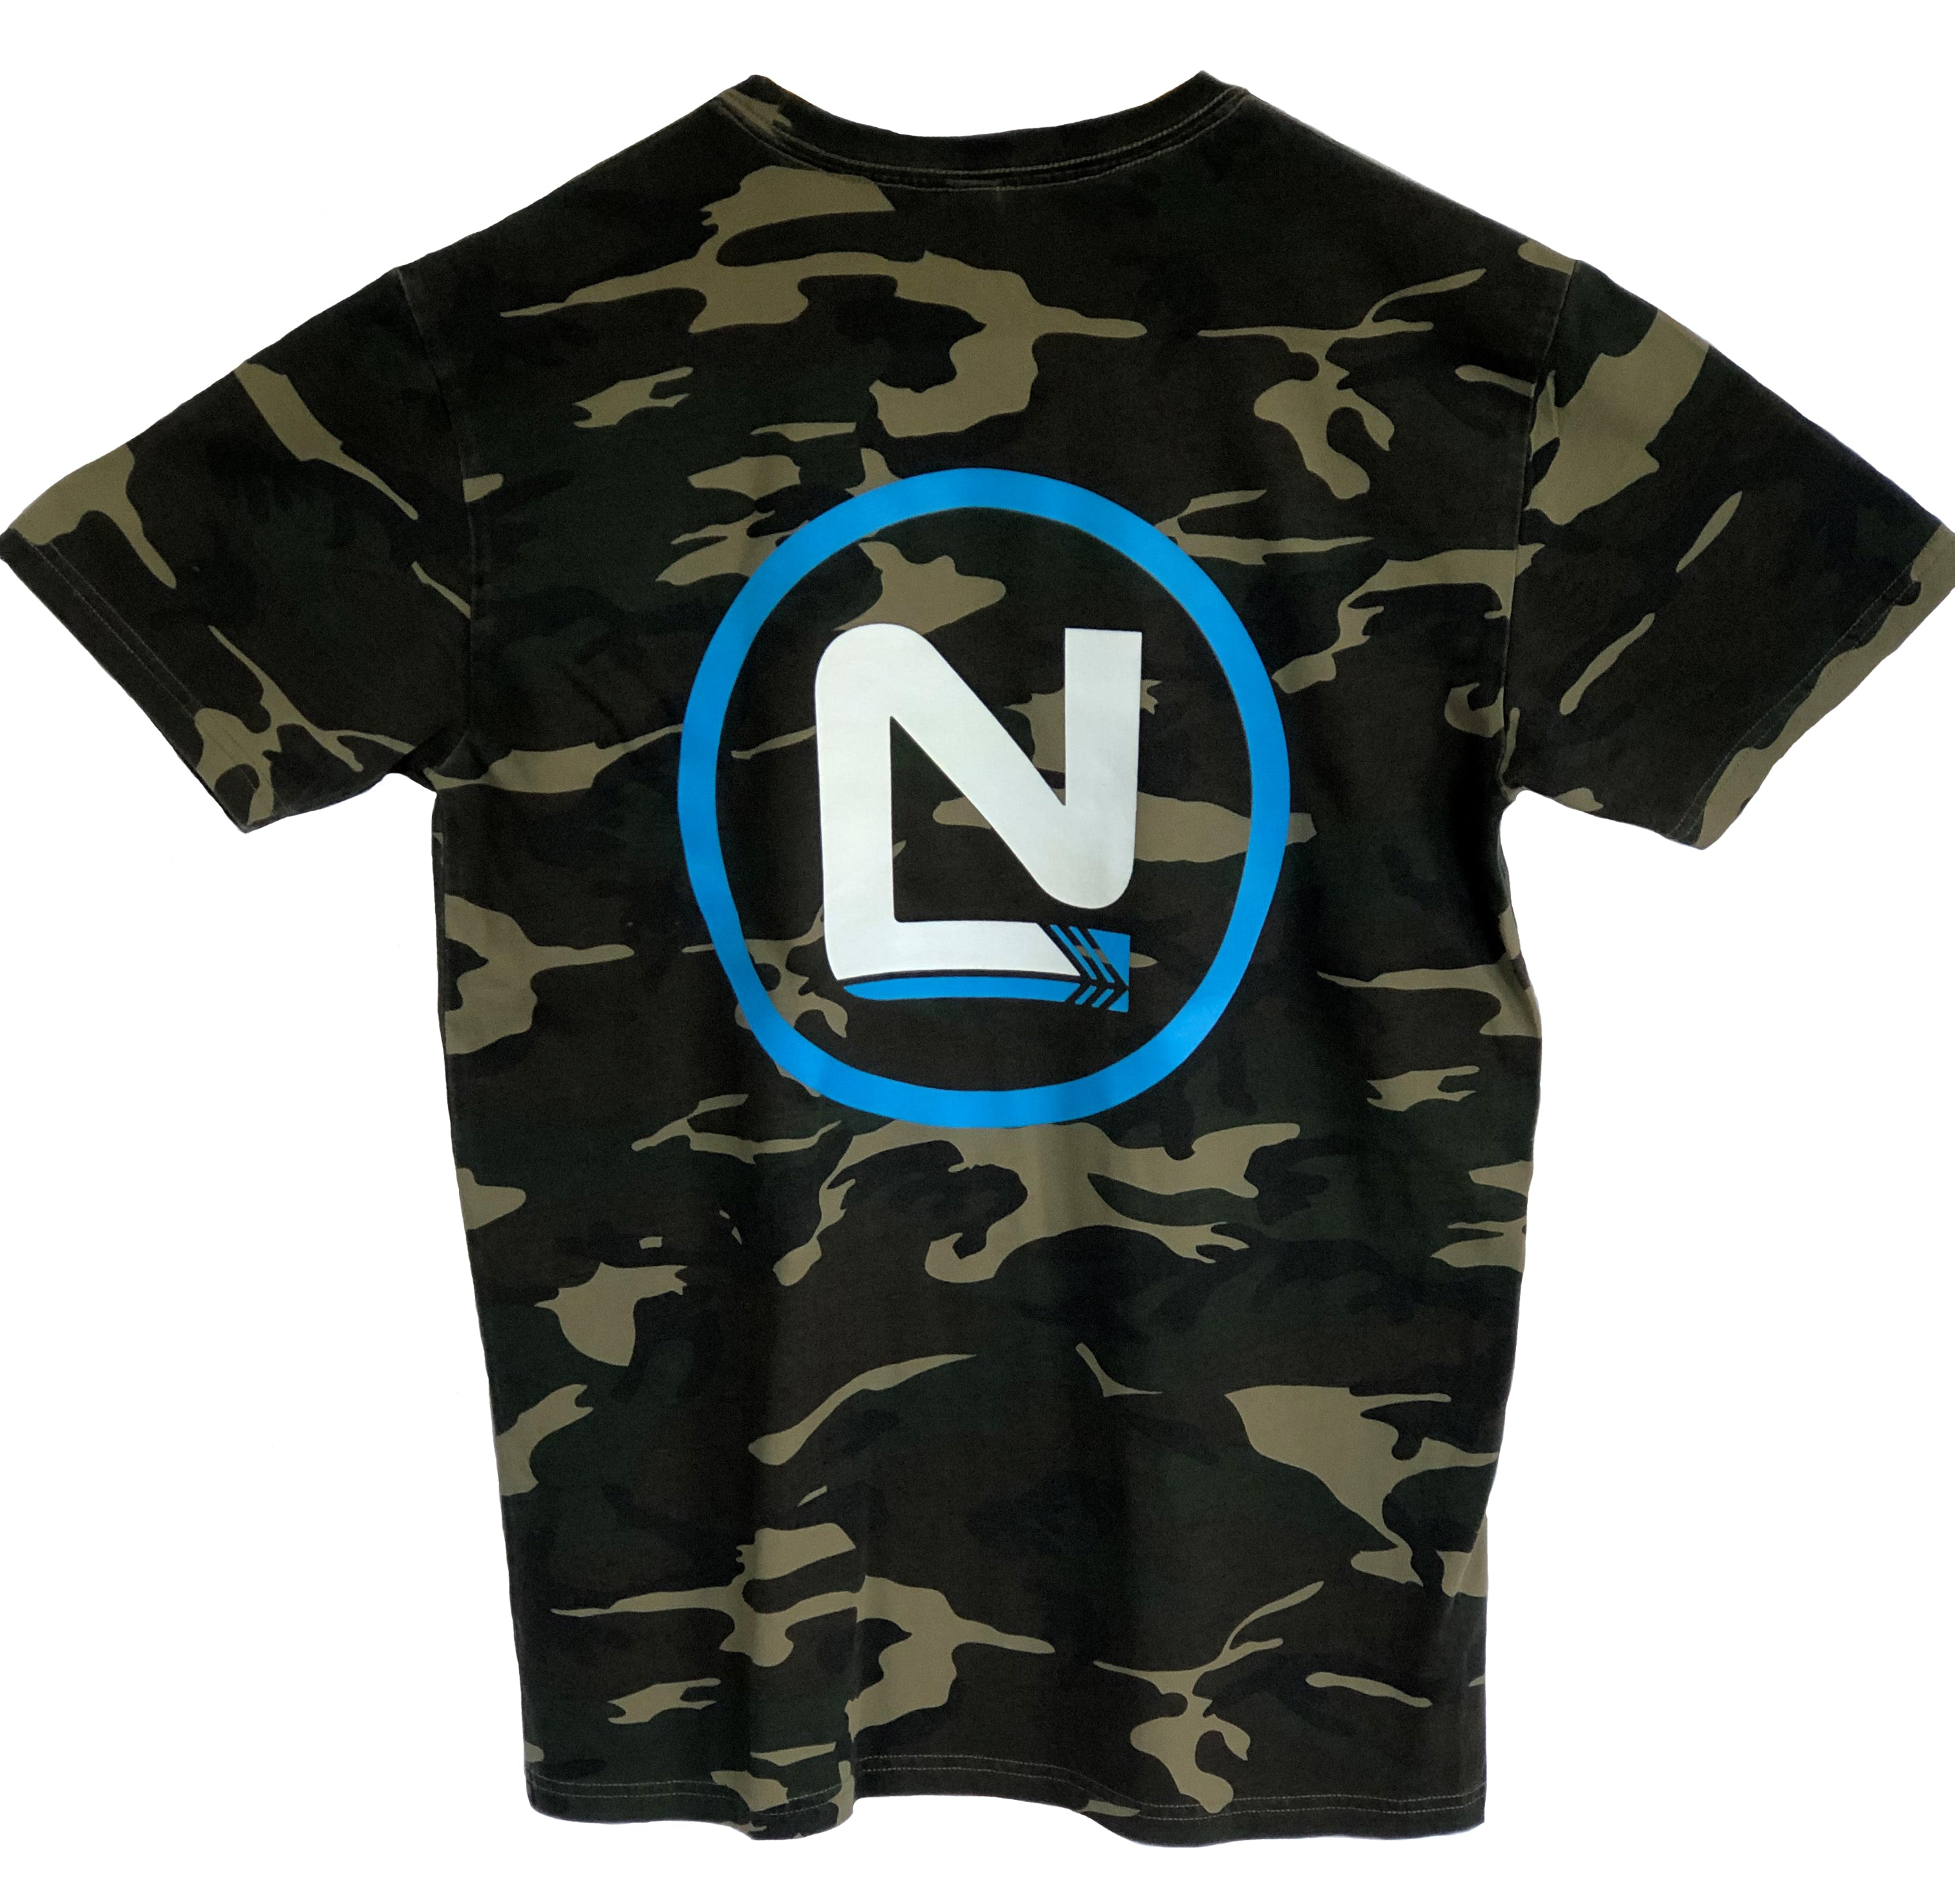 Mens Camo T-Shirt - N Left, N Circle Back